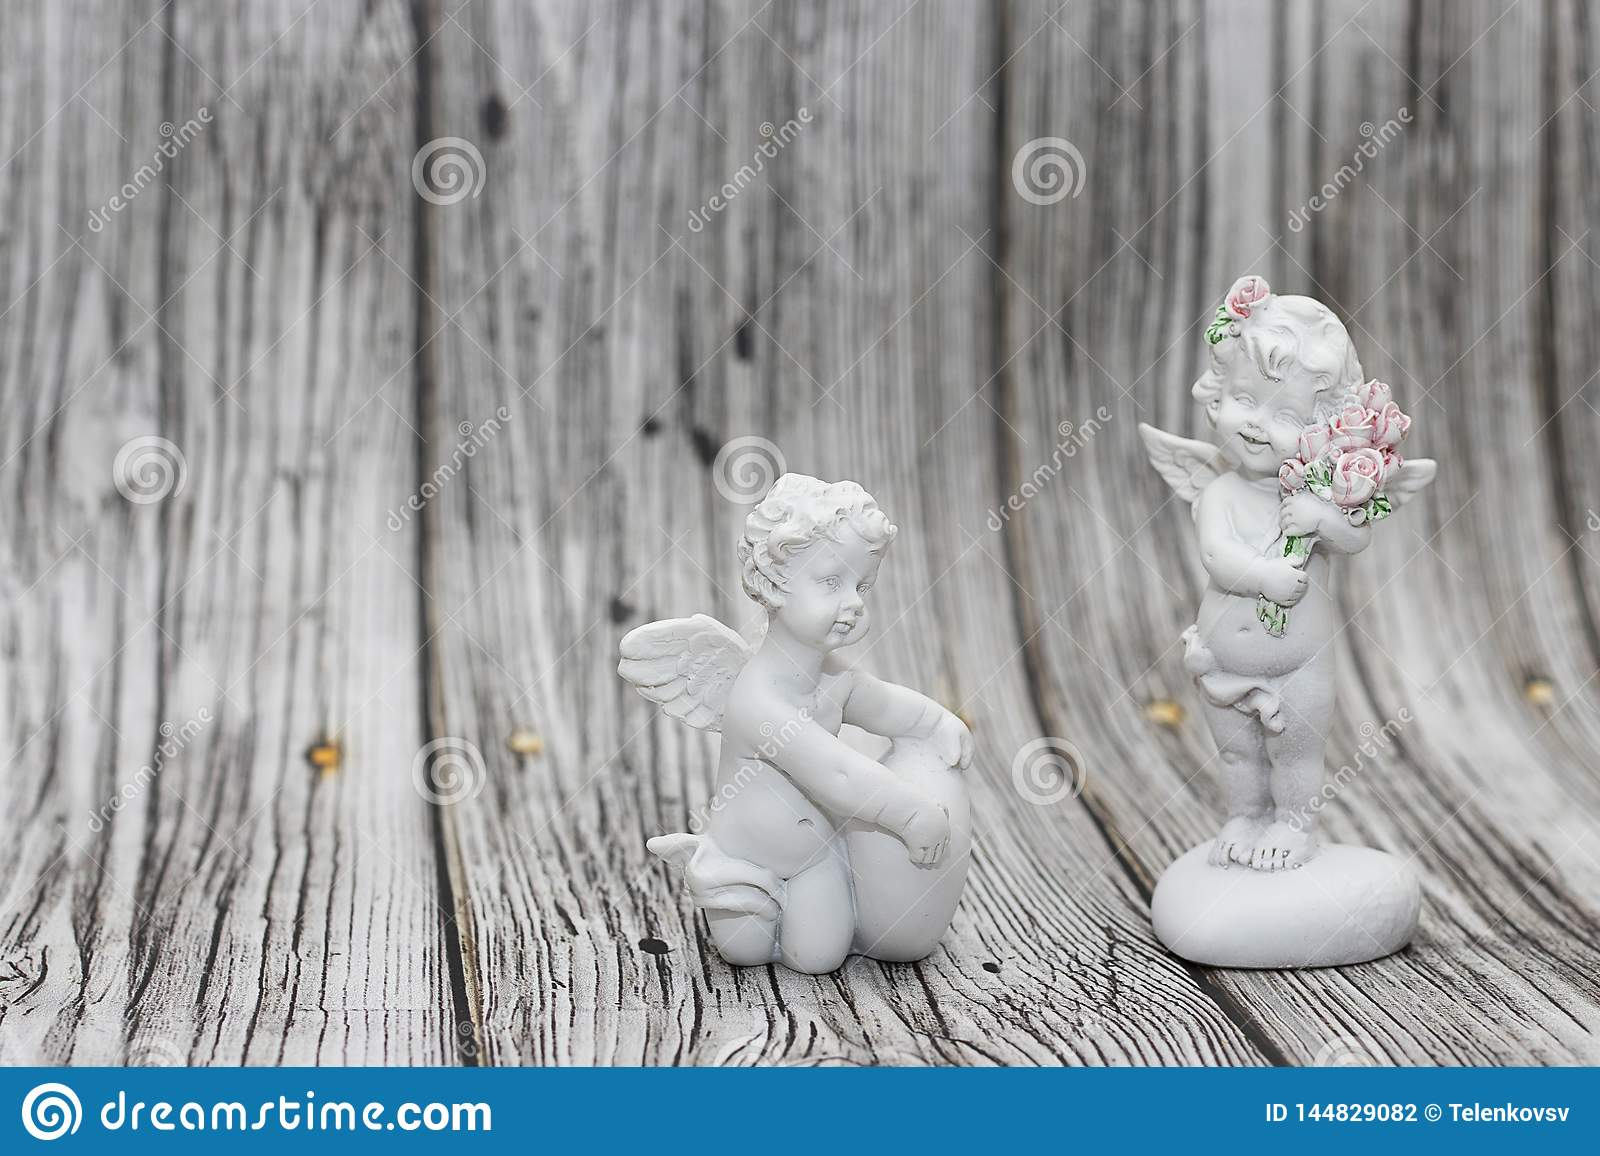 Figurines Of Angels On A Wooden Background A Boy With A Heart And A